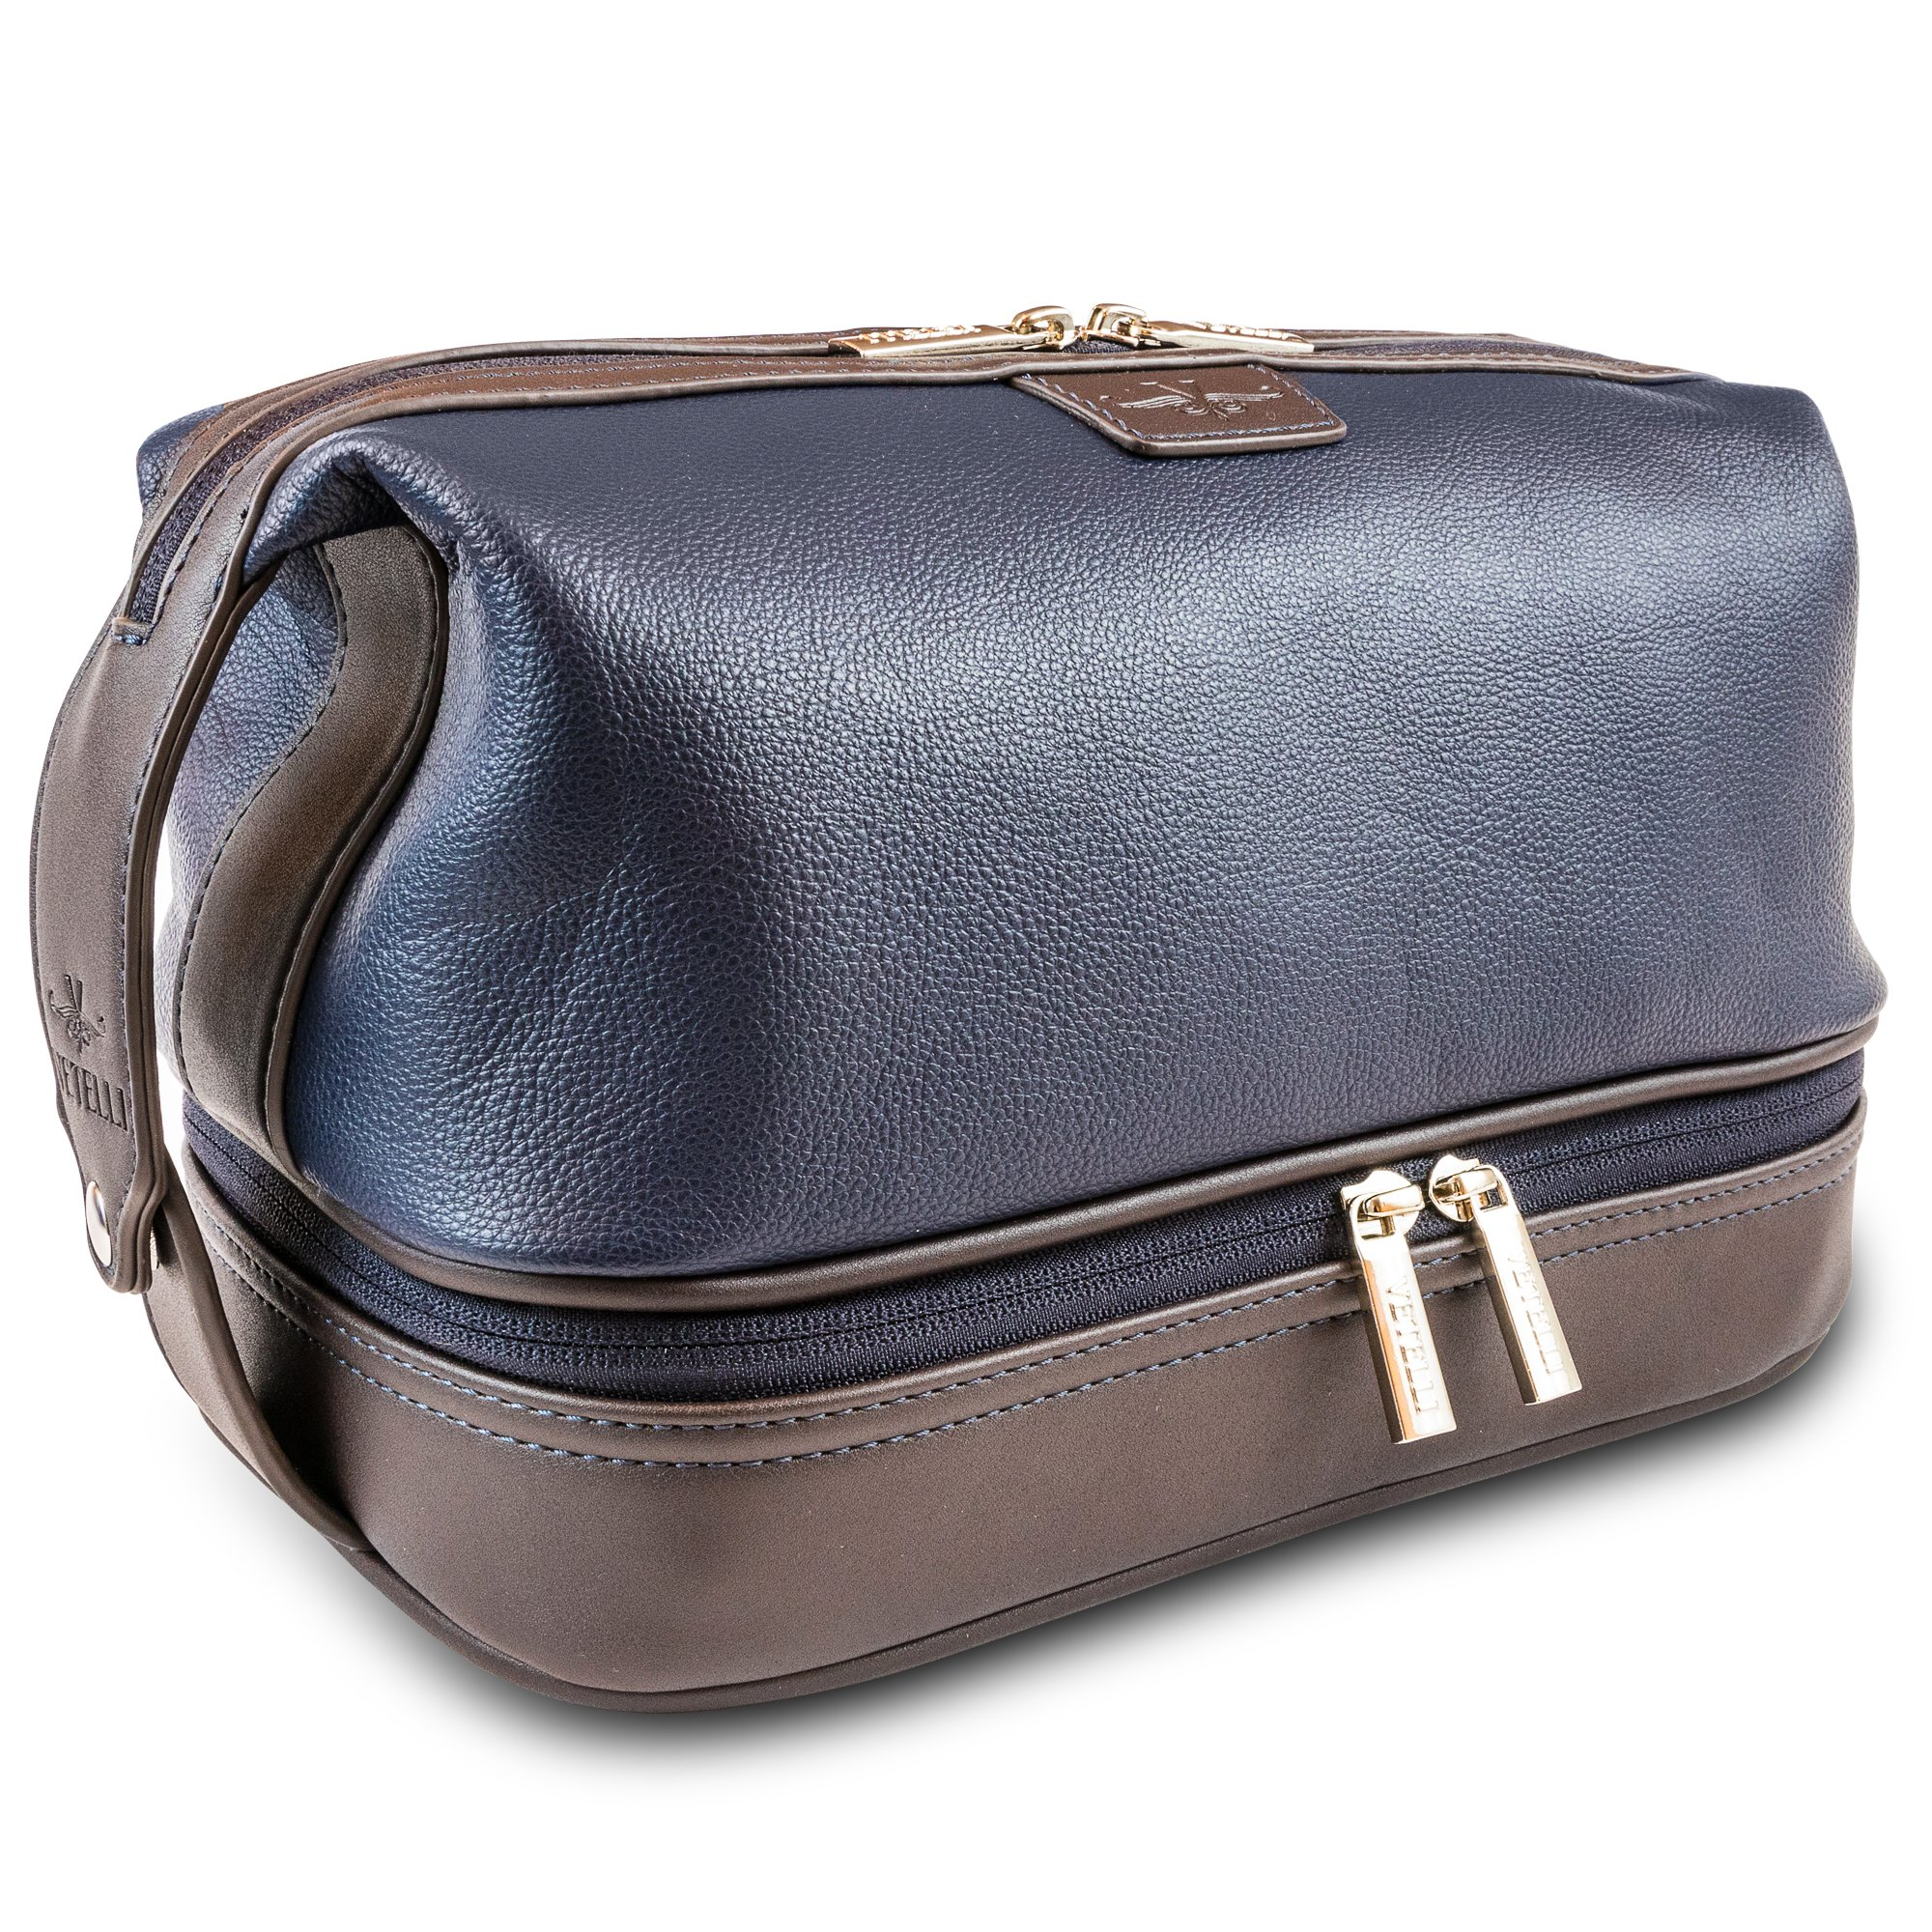 Vetelli Leo Mens Leather Toiletry Bag - Dopp Kit - Lots of Pockets. Plenty of Space. Large Compartments. Durable Design. Easy to Stay Organized When Travelling for Business or Pleasure. by Vetelli